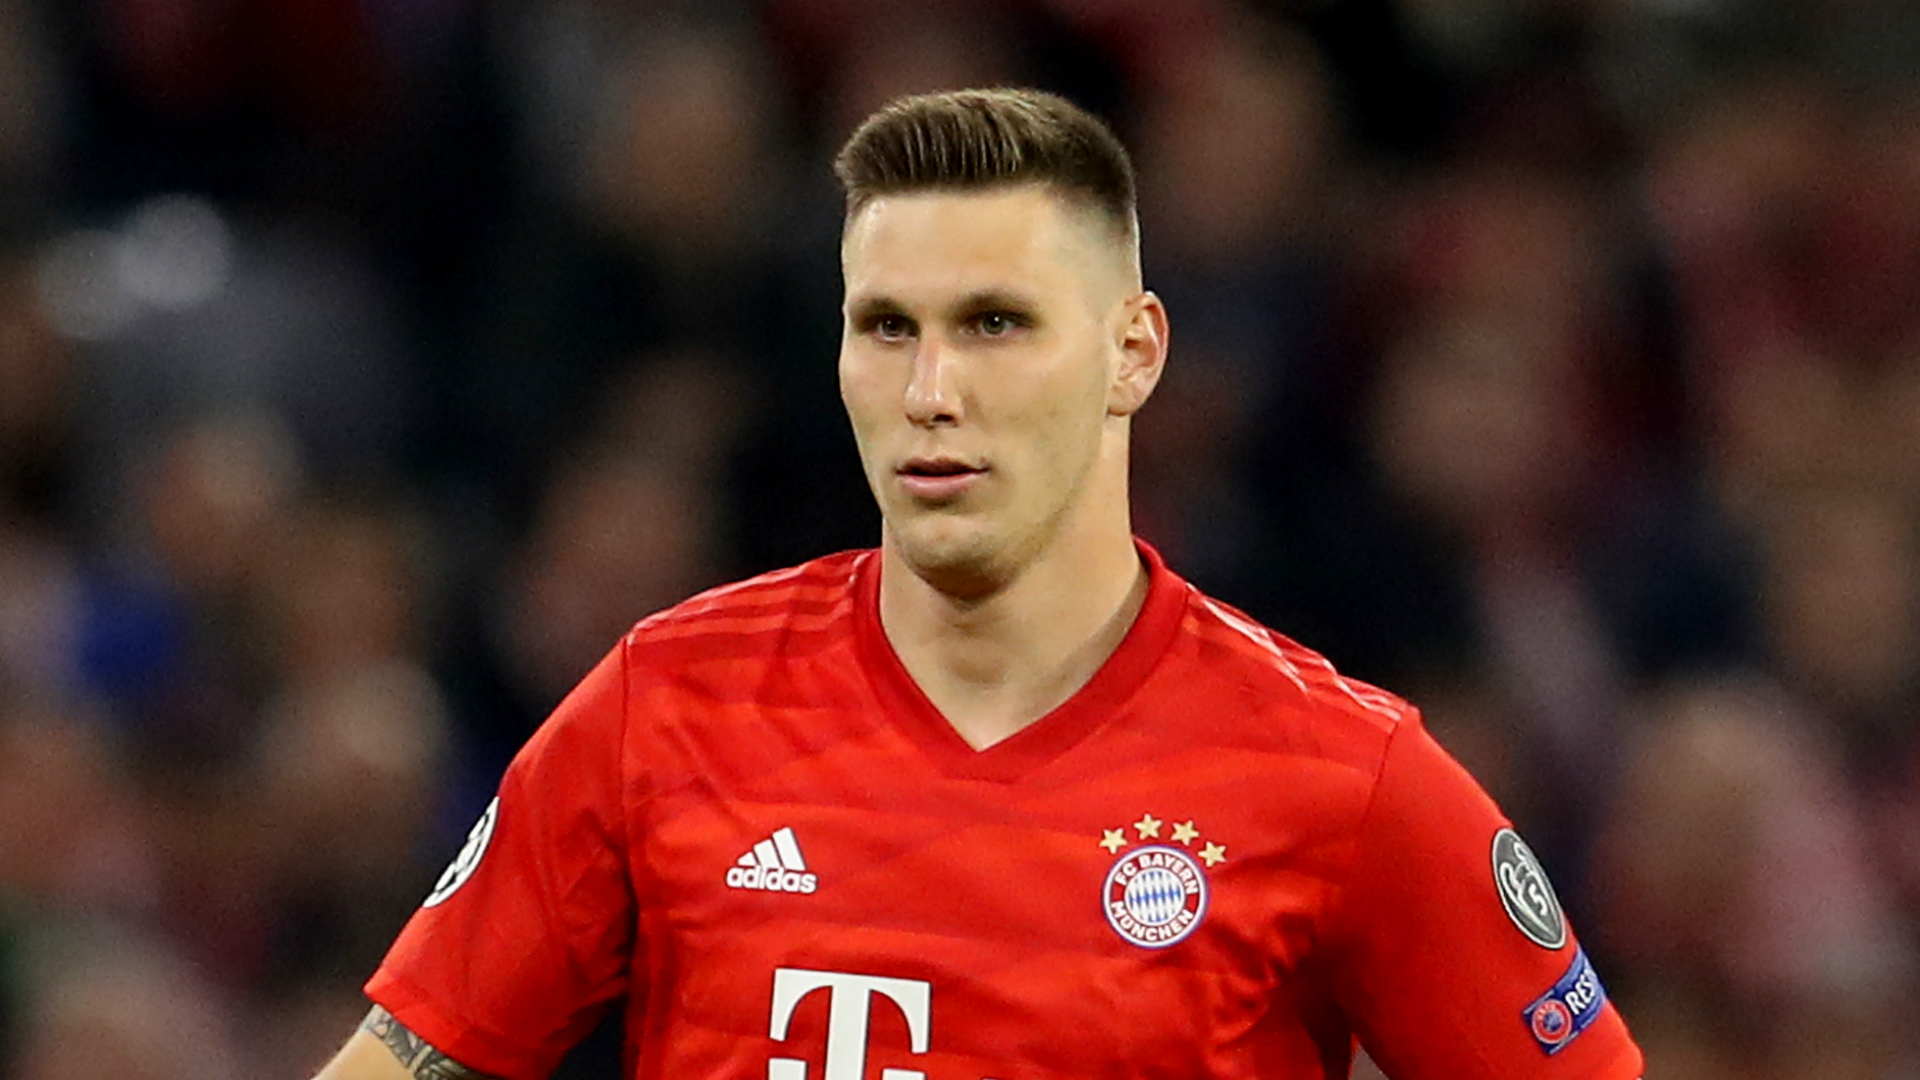 Bayern boss Flick delighted for Sule after comeback in Marseille friendly